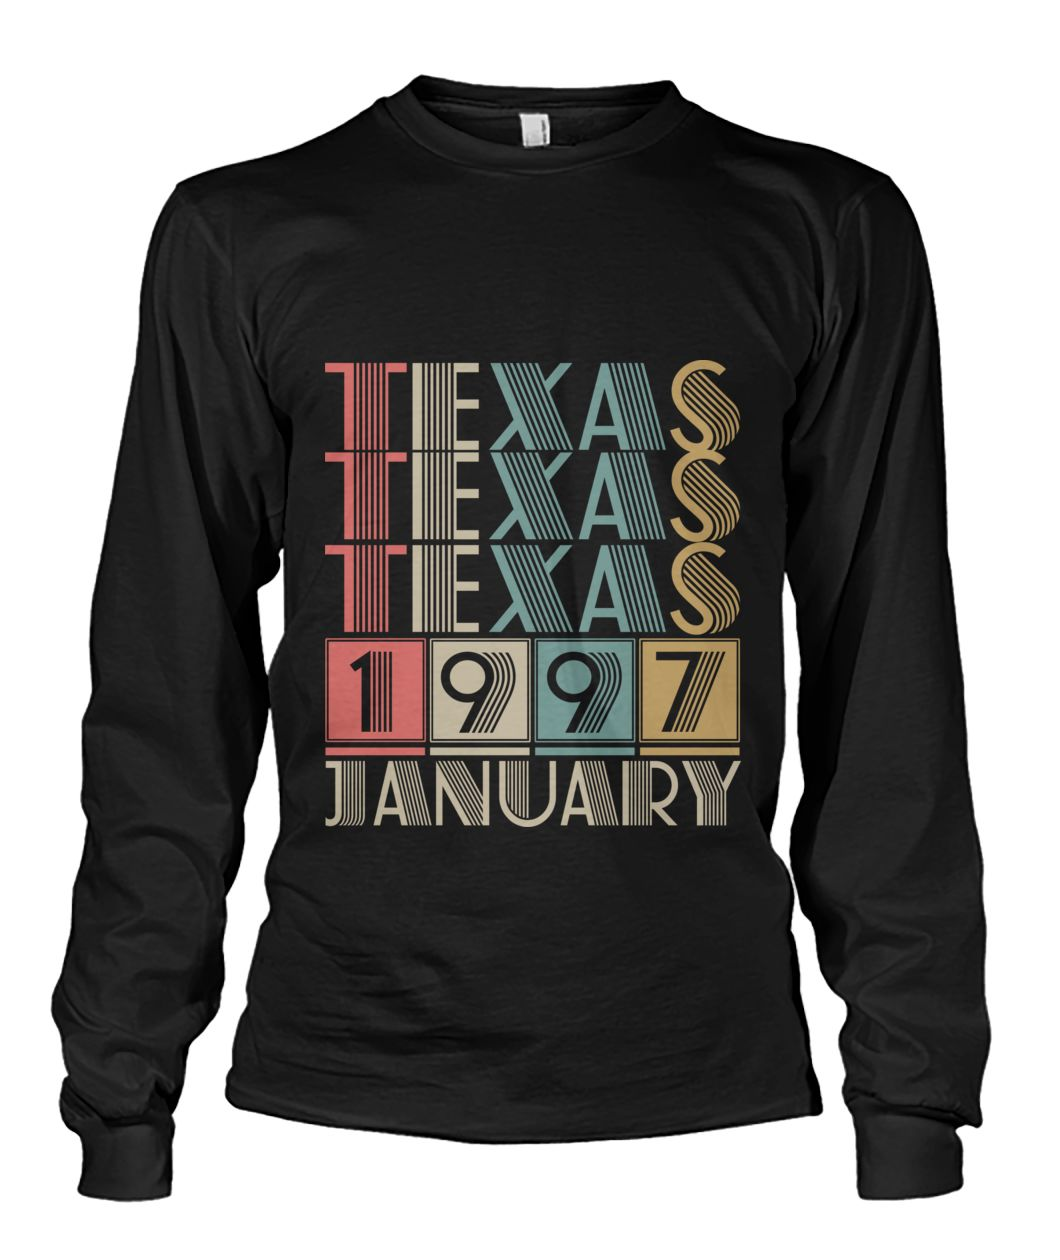 Born in Texas in January 1997 t shirt-Short Sleeves - TEEHOT.COM